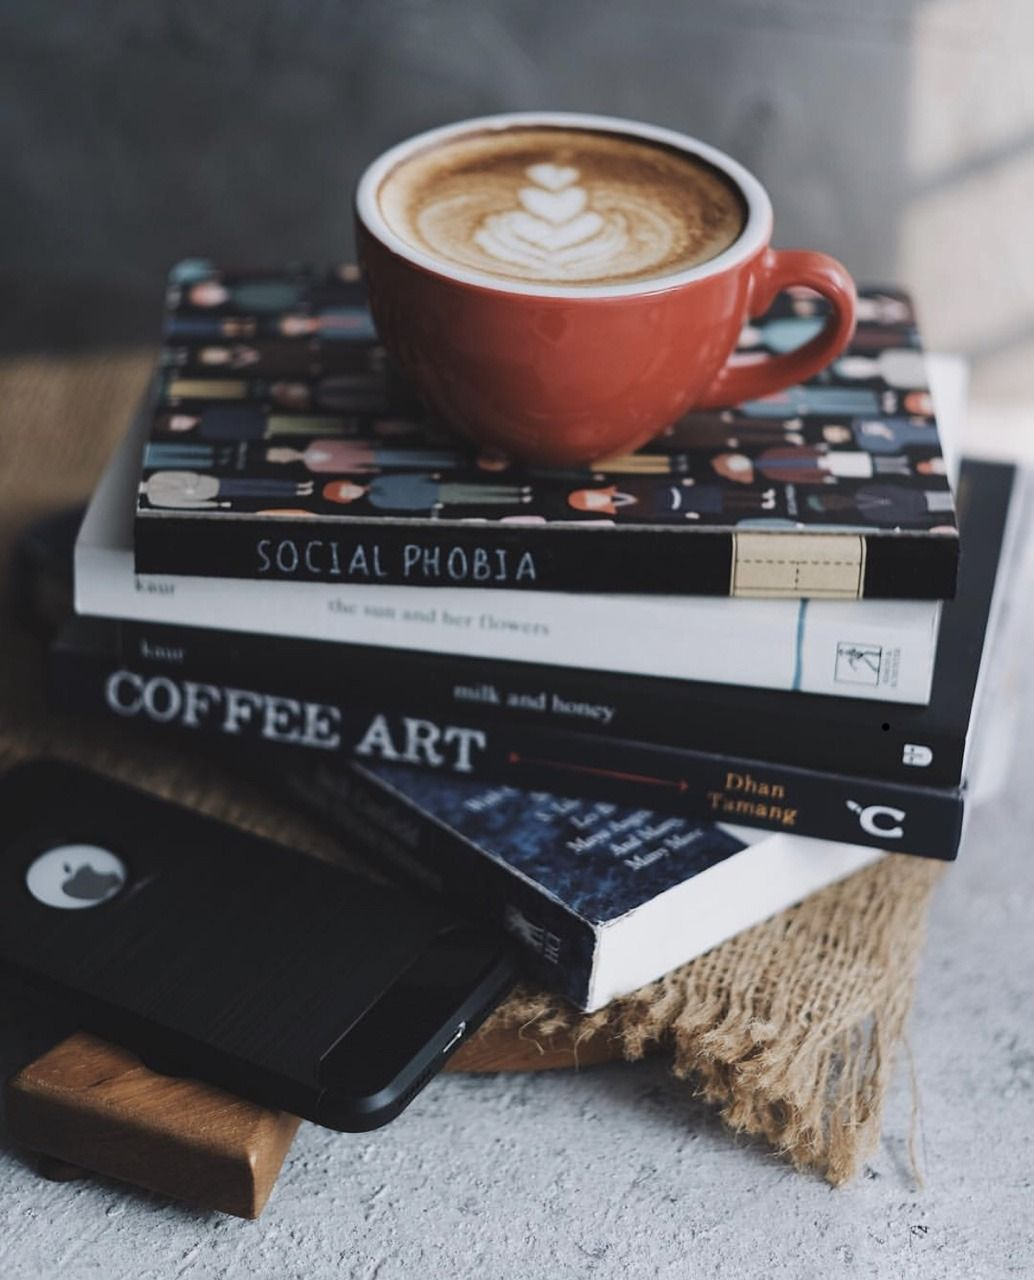 Coffee Art Latte Art Books And Coffee Coffee Art Coffee And Books Coffee Cafe